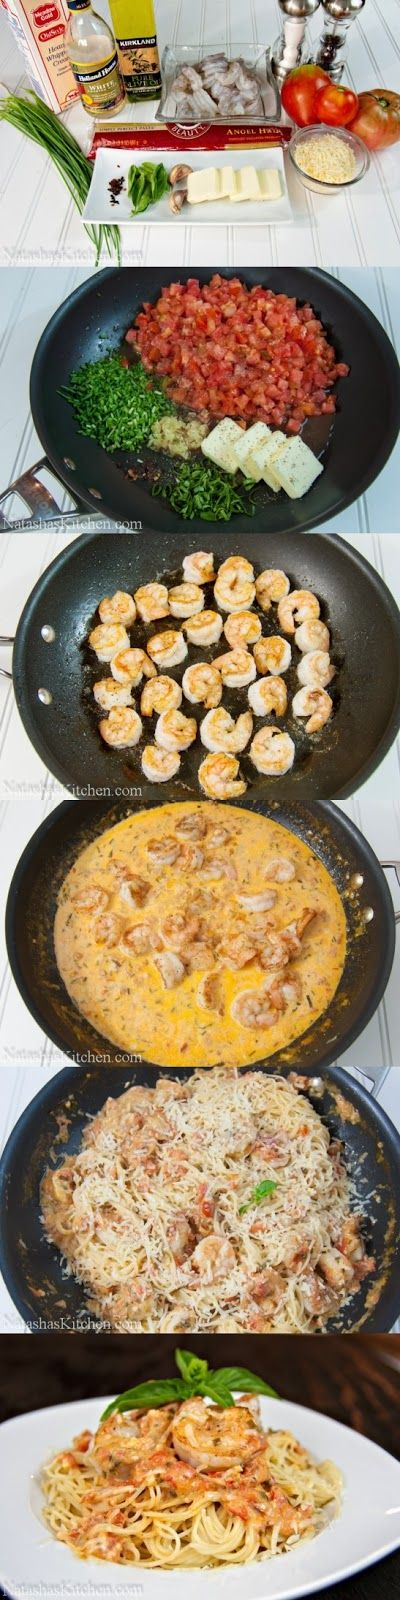 Spaghetti with Shrimp in a Creamy Tomato Sauce ~ Allrecipecenter